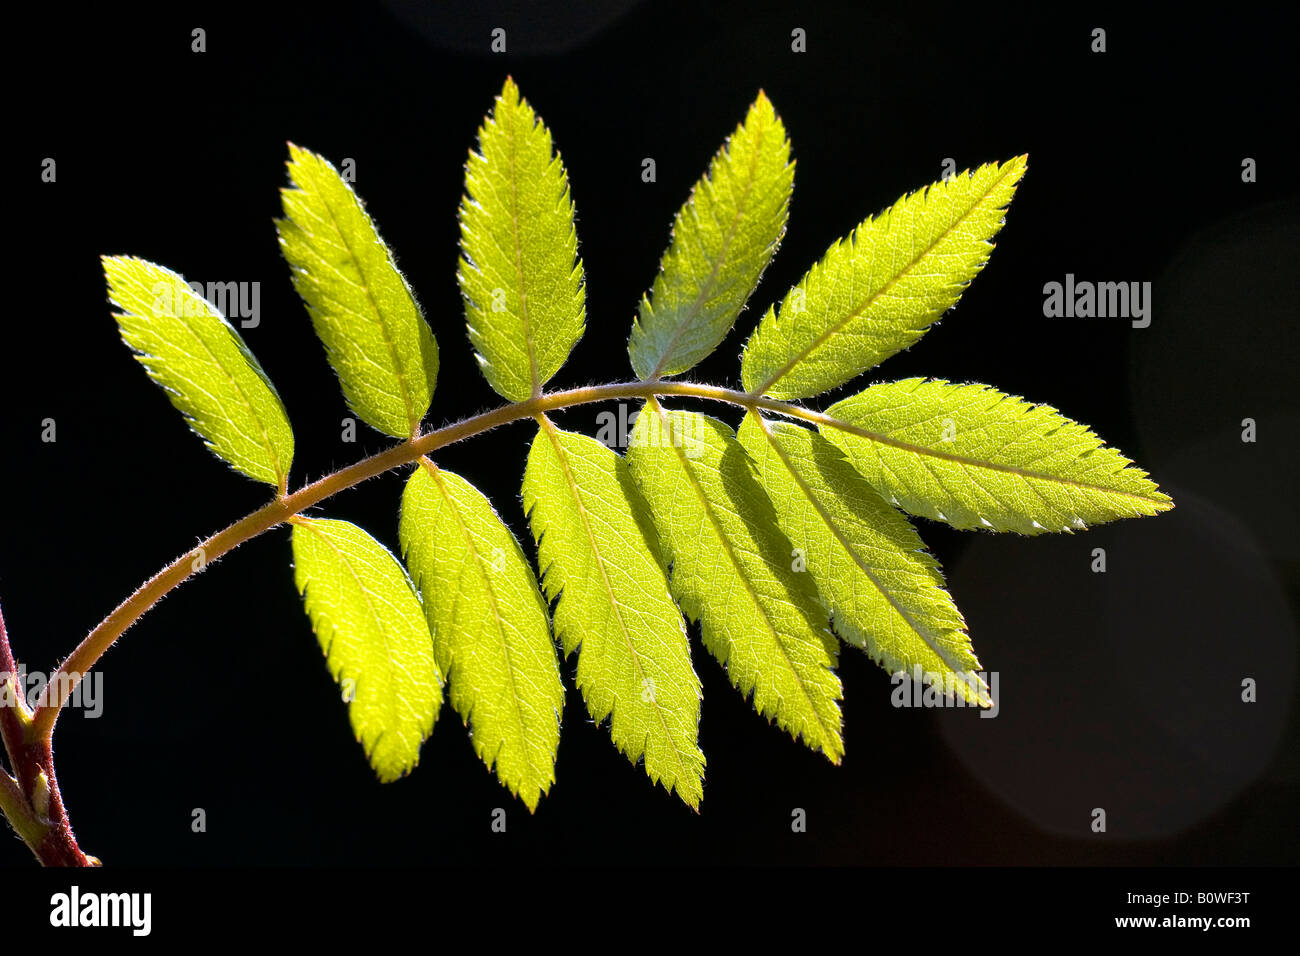 European Rowan leaves, Mountain Ash, (Sorbus aucuparia), spring foliage, shoots, backlight, photosynthesis Stock Photo